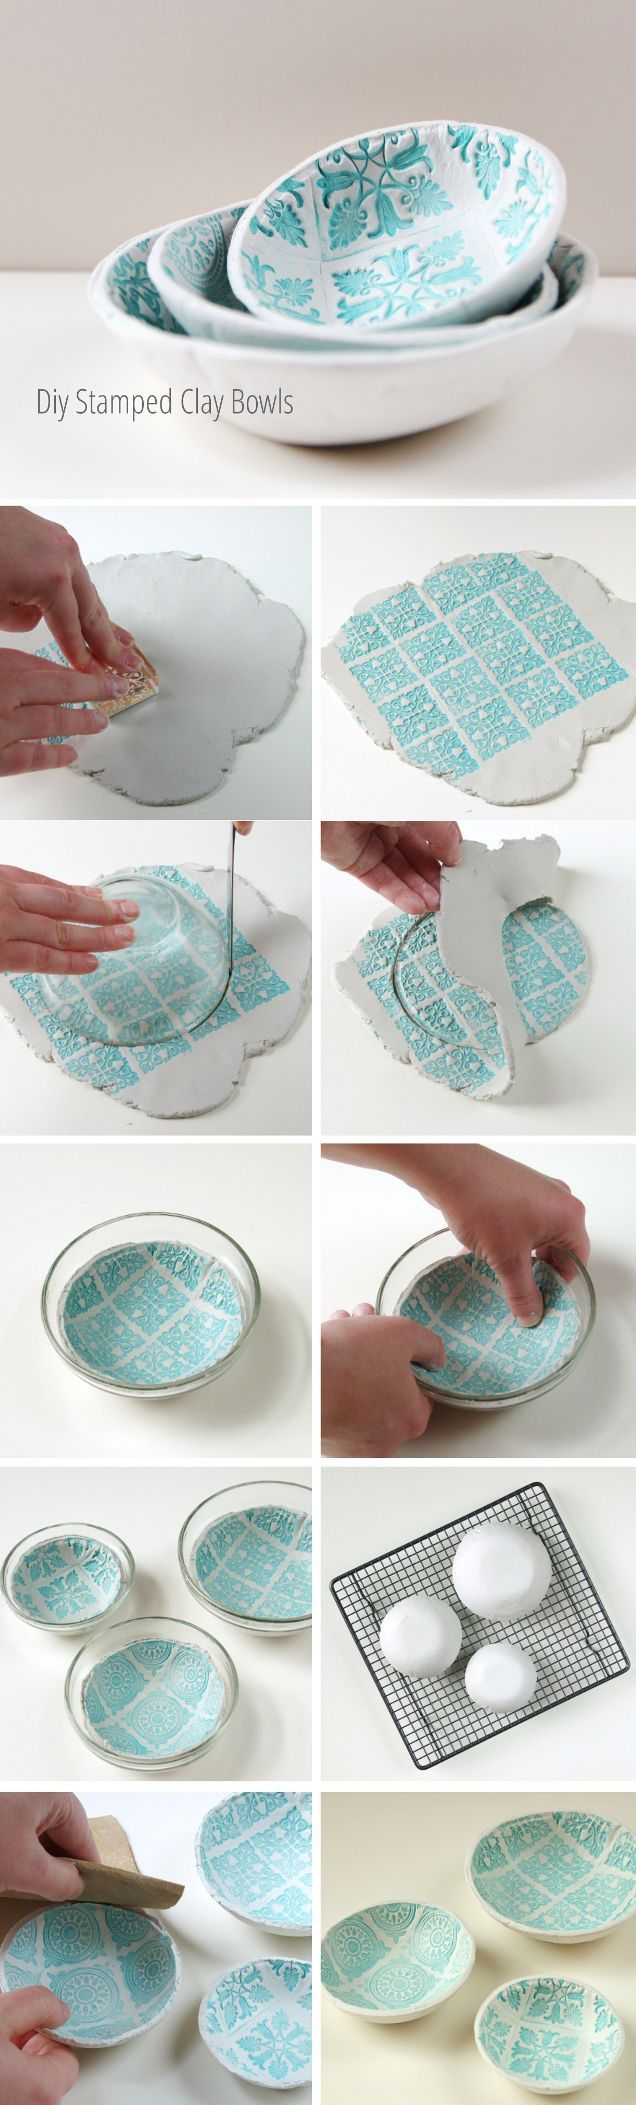 DIY Stamped Clay Bowls by http://jiggleclaws.blogspot.ch/